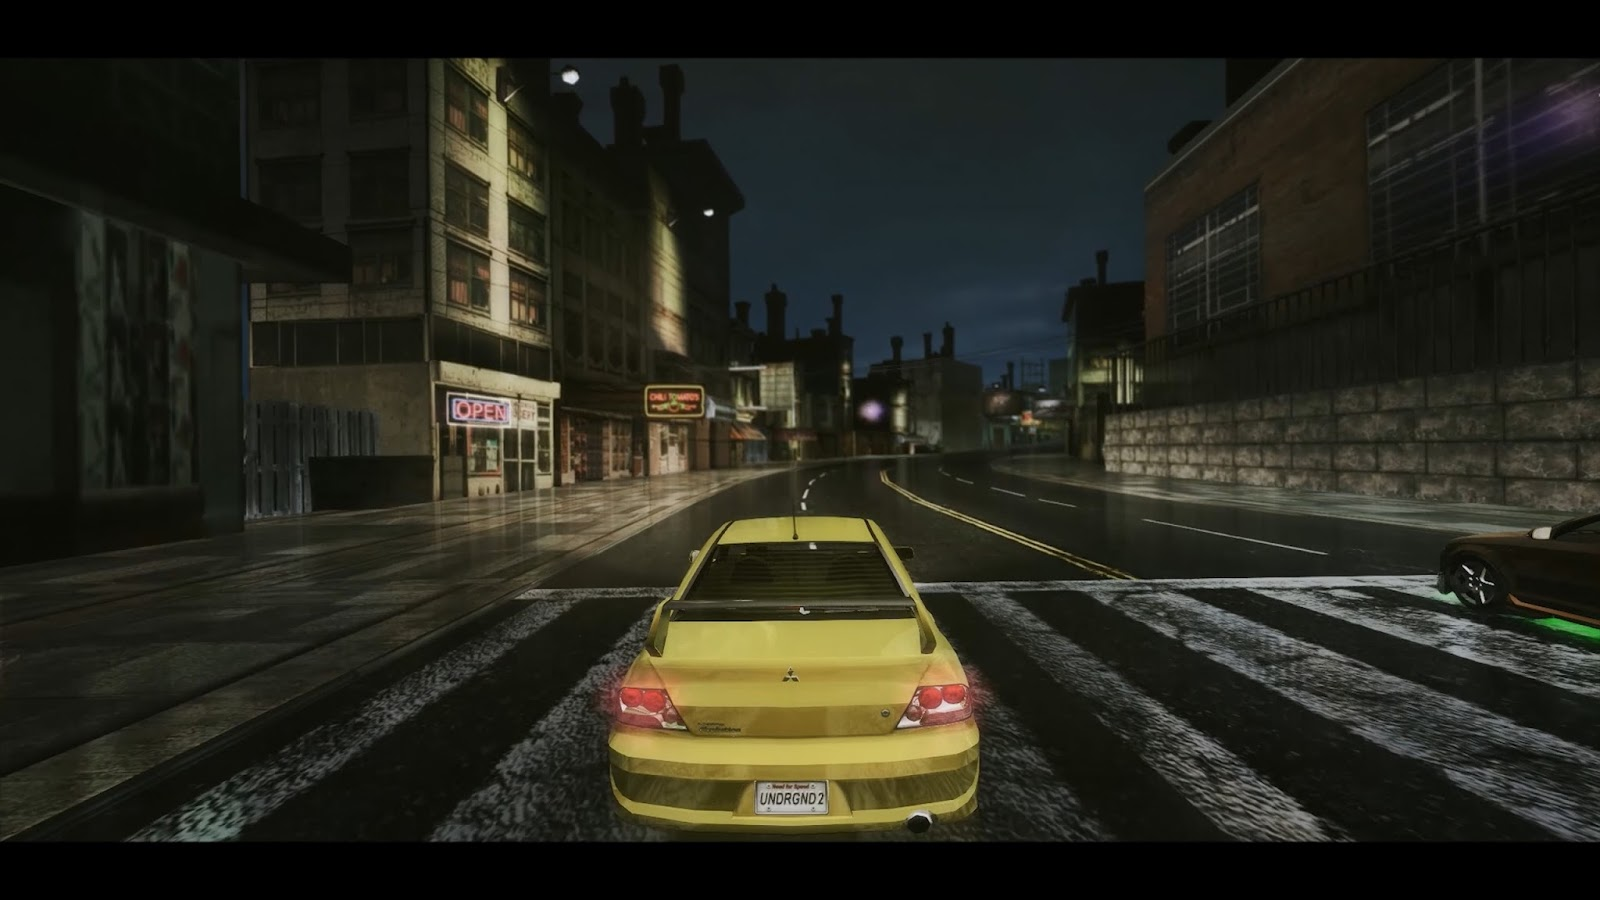 need for speed underground 2 redux graphics mod nfsu2 remastered